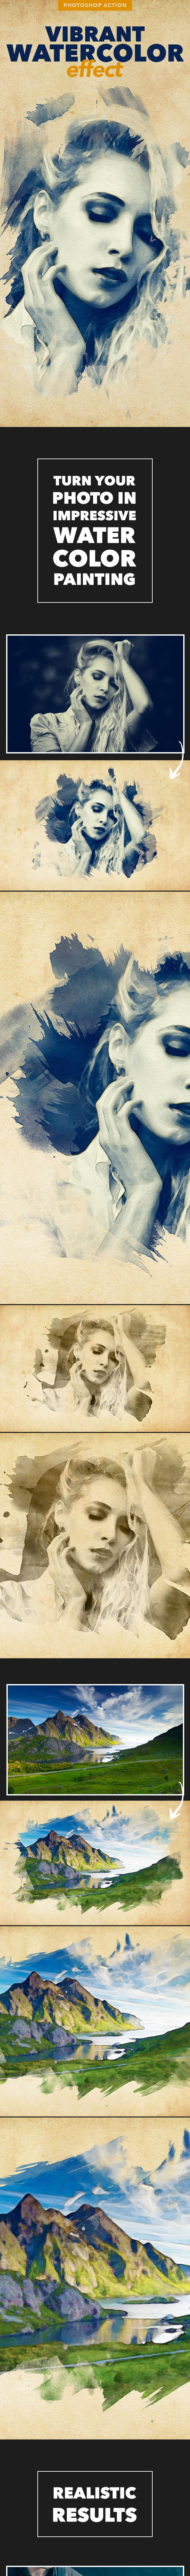 Vibrant Watercolor Effect - Photoshop Action - Photo Effects Actions